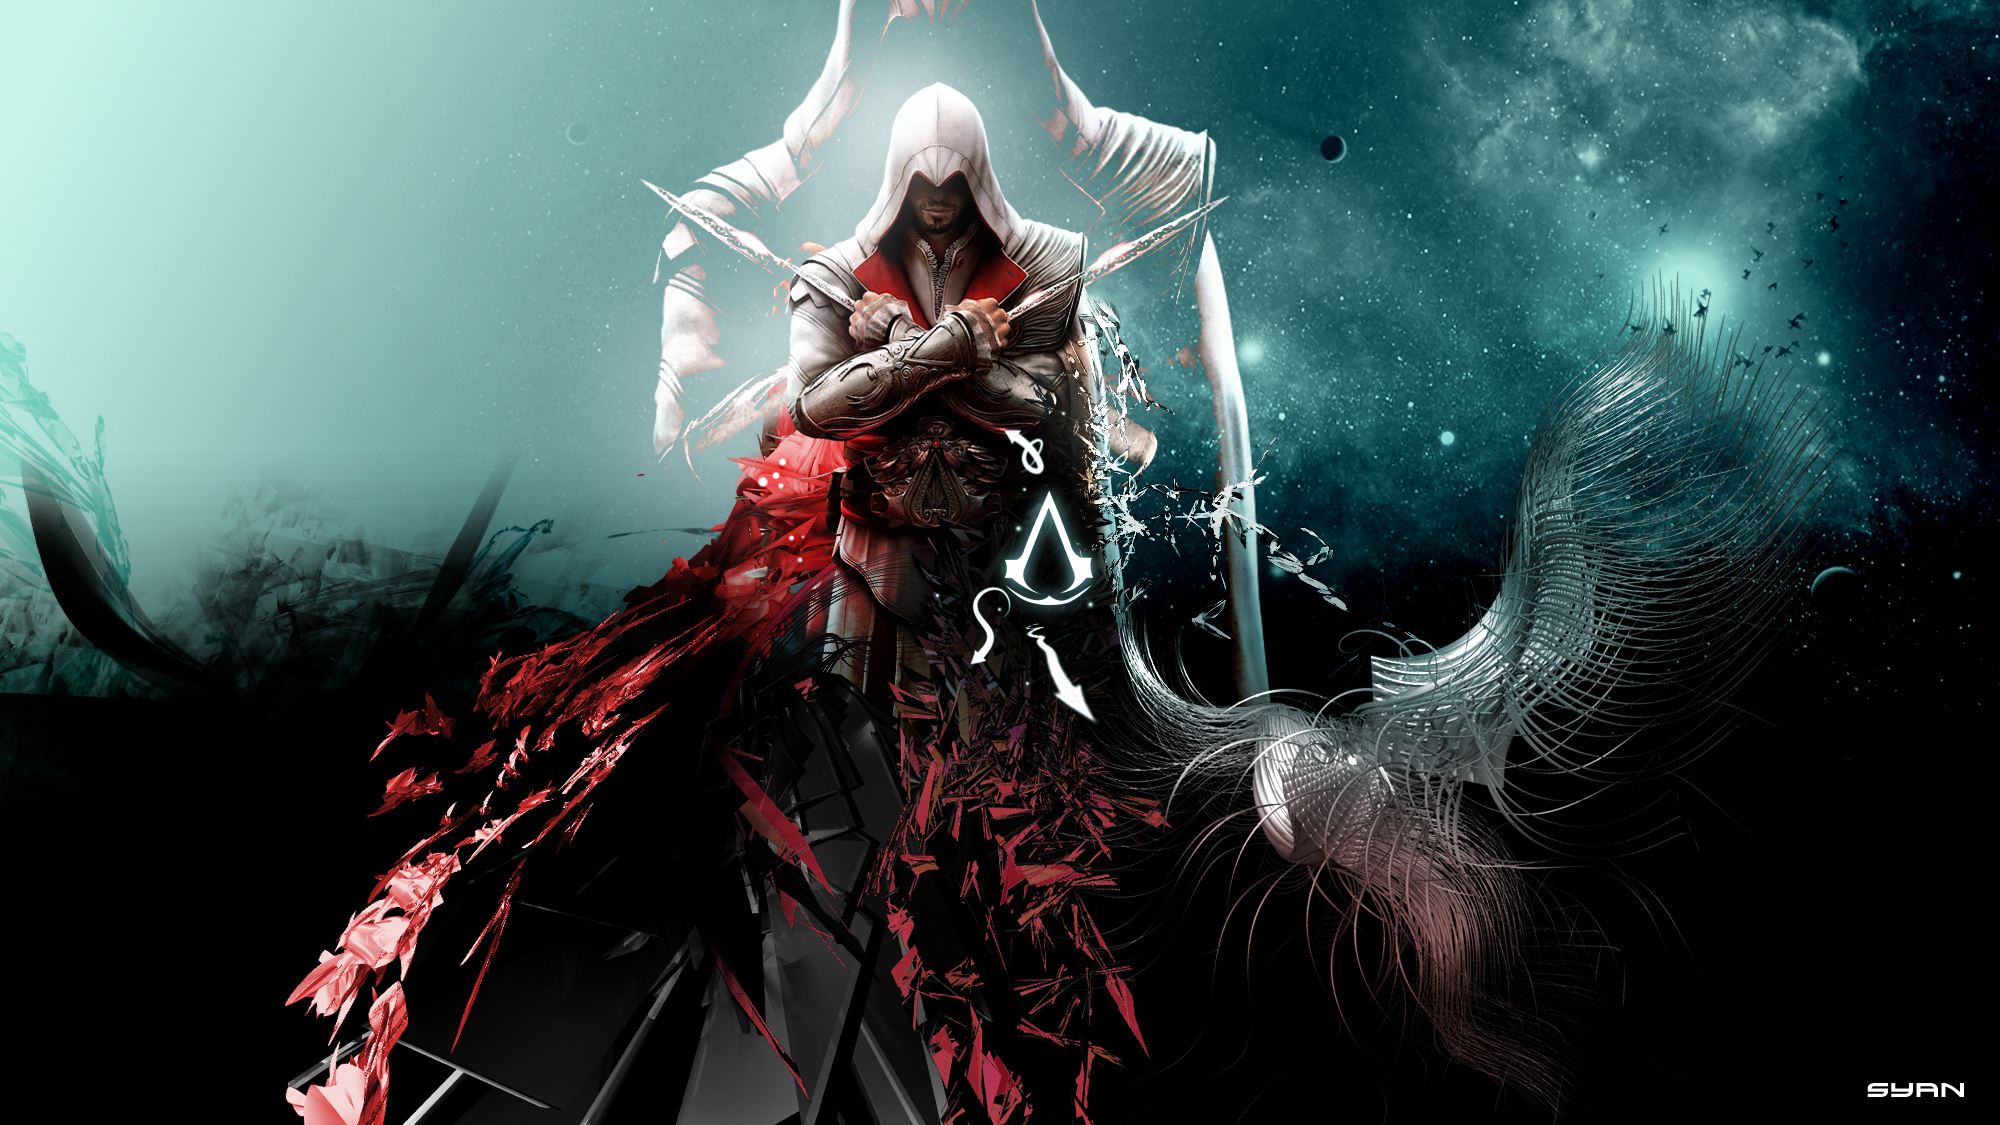 Assassins Creed All Wallpaper Android 2000x1125